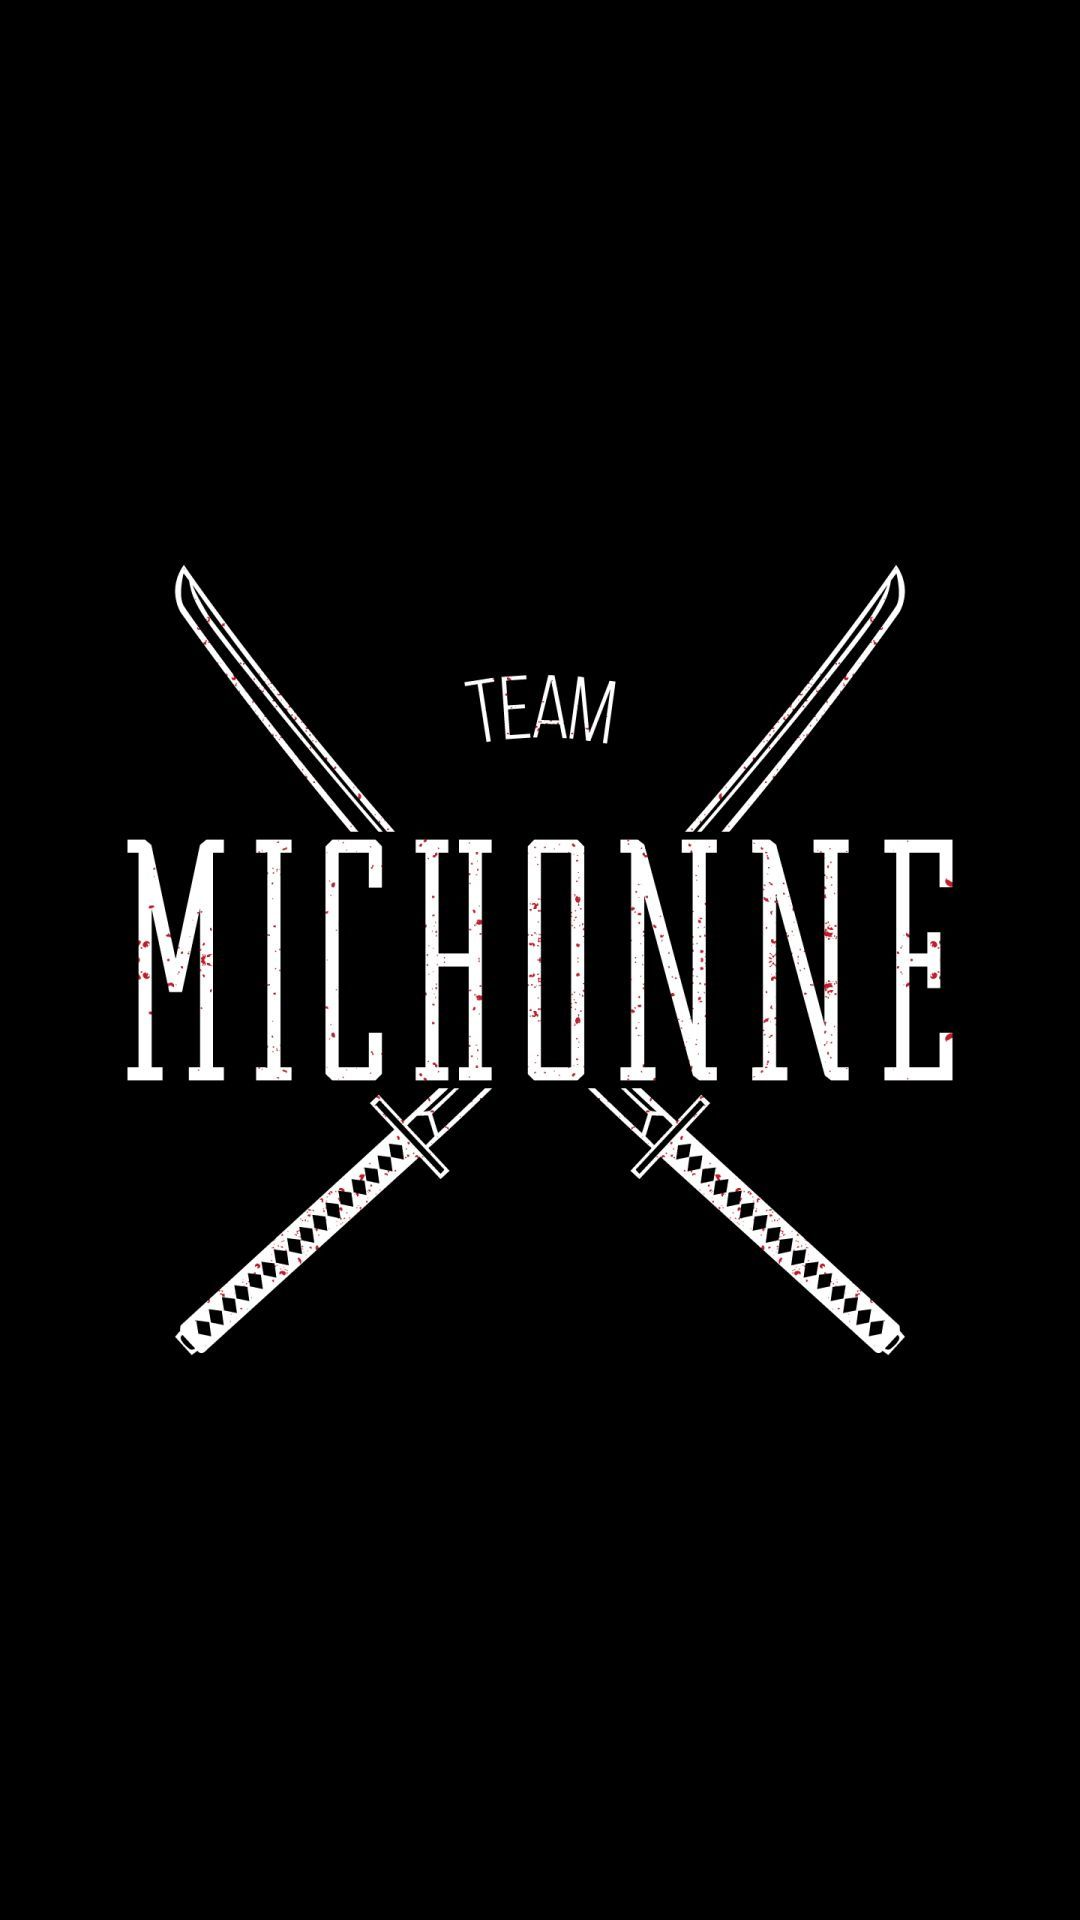 The walking dead team michonne android wallpaper free download the walking dead team michonne android wallpaper free download voltagebd Choice Image